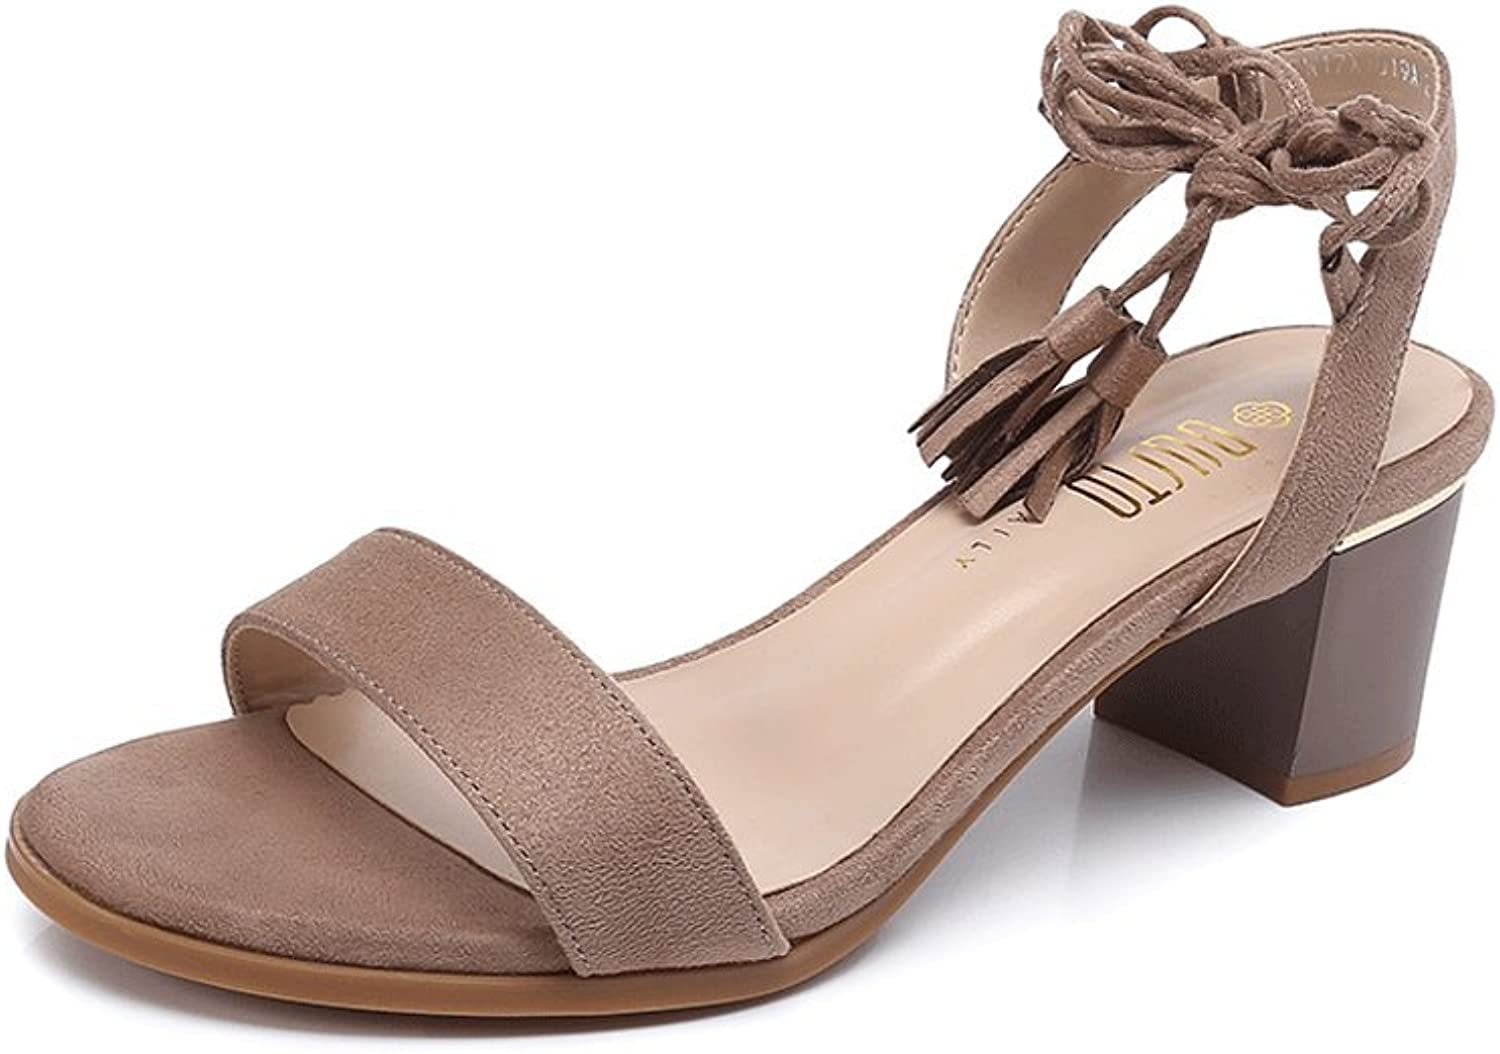 Ladies Sexy Sandals Summer Exposed Toe High Heels Simple Casual shoes ( color   Brown , Size   37 )